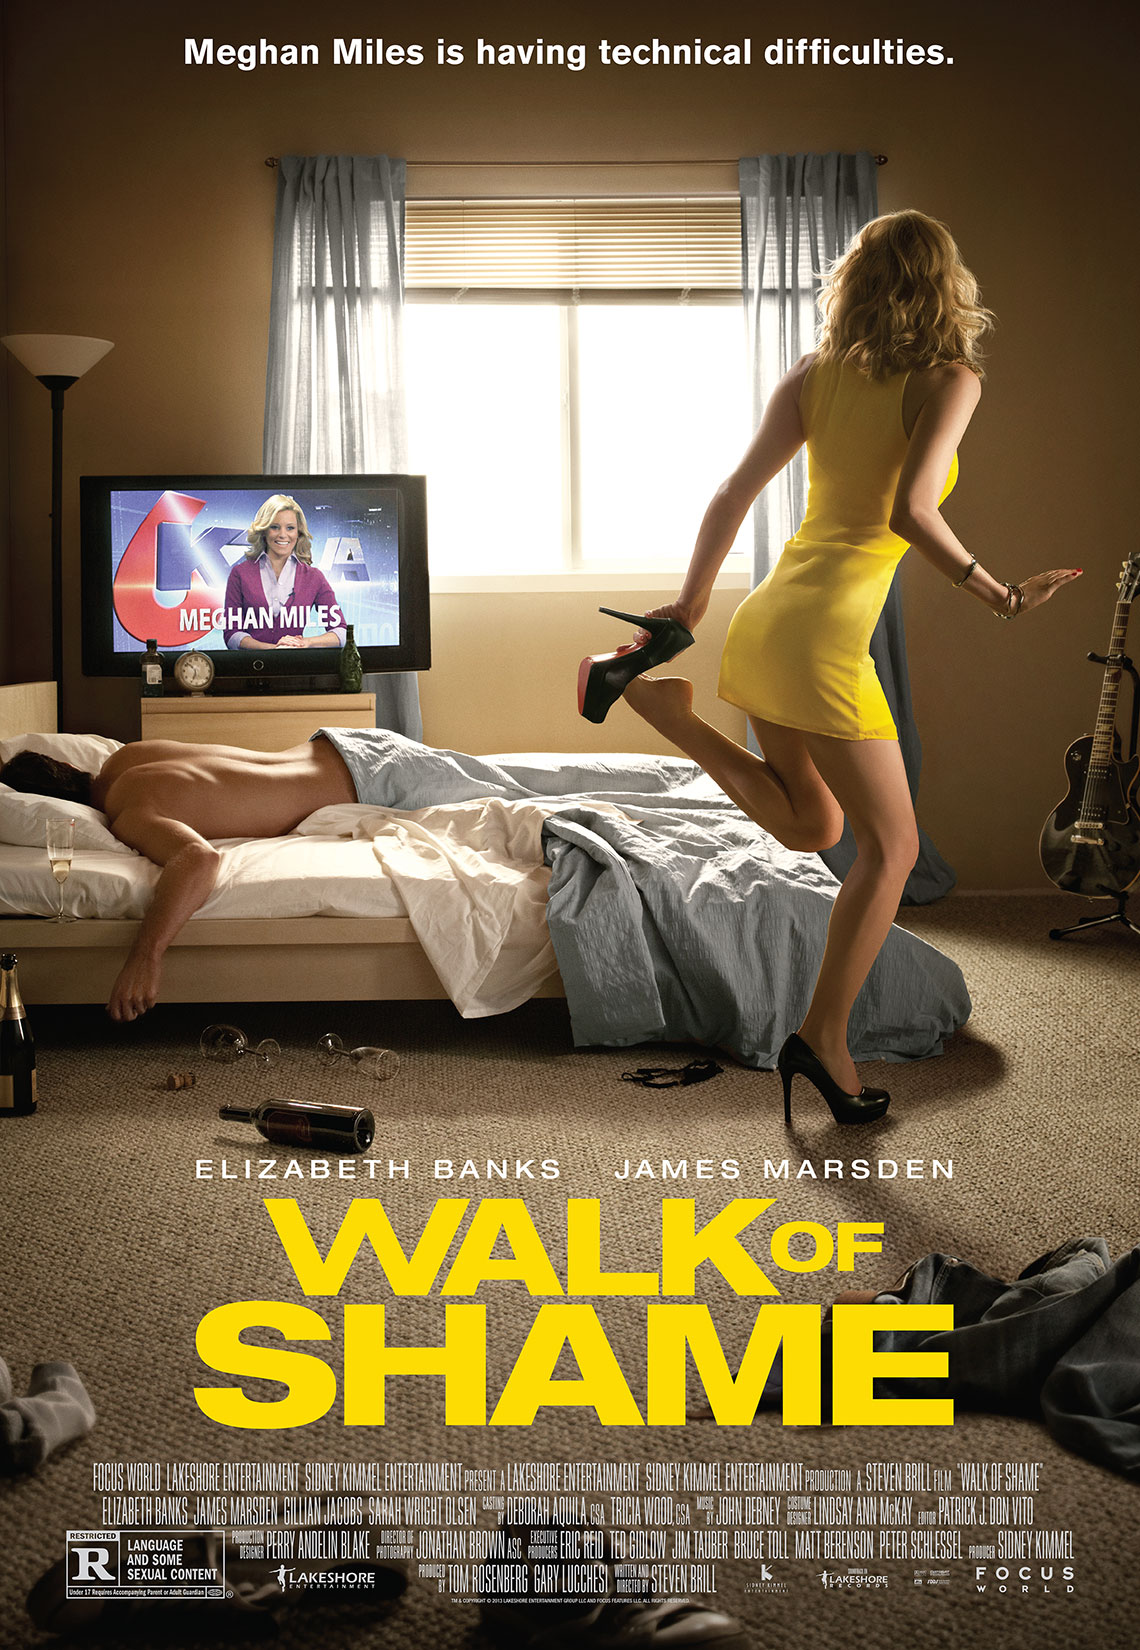 Walk-of-Shame-Poster-by-Robert-Ascroft